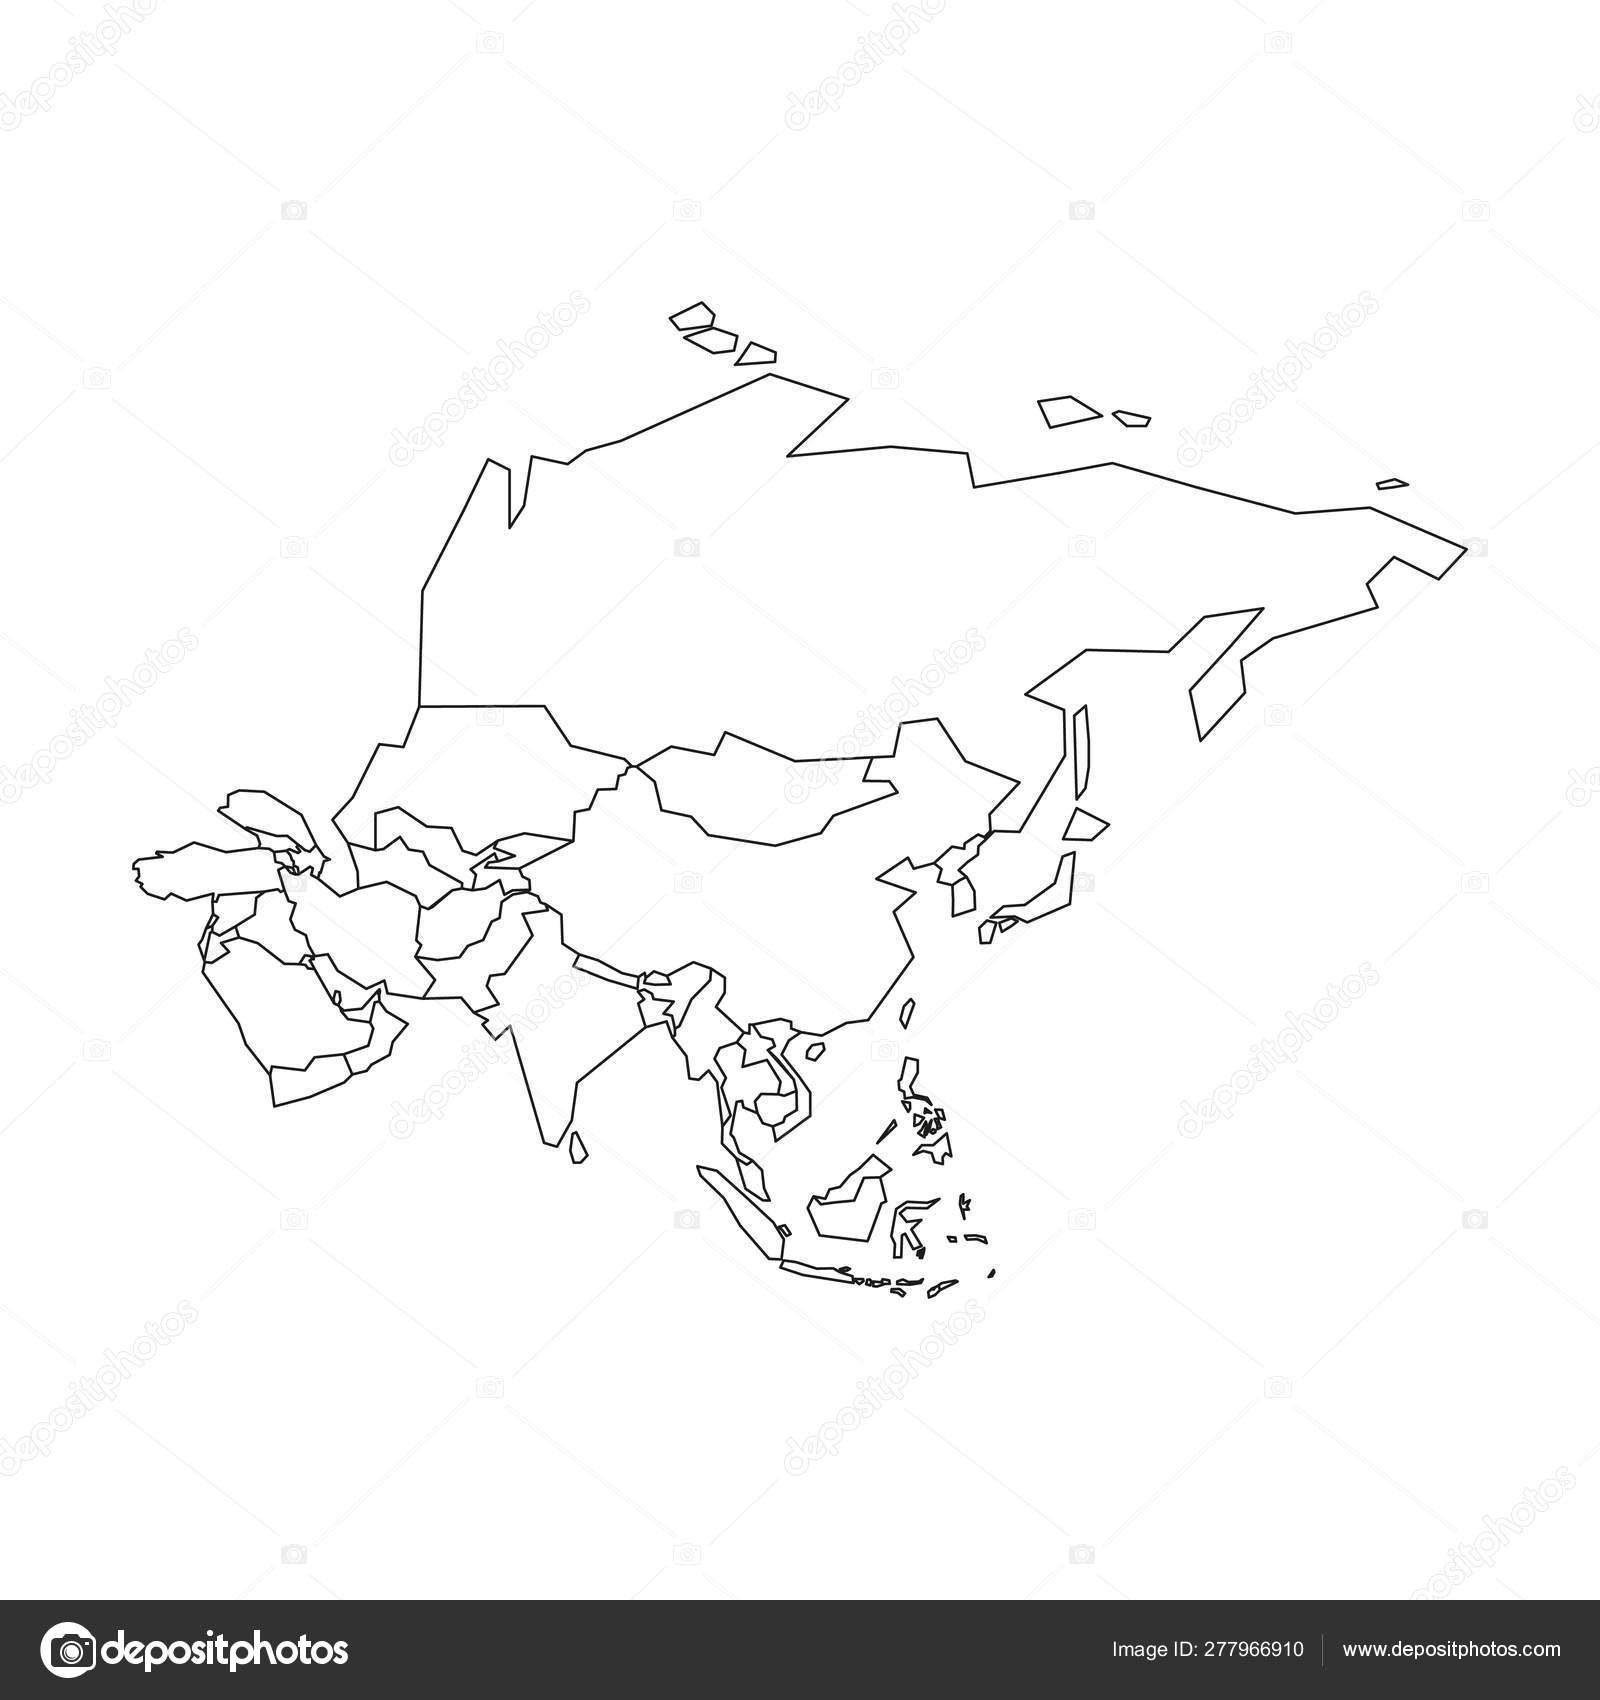 Political map of Asia. Simplified black wireframe outline ...